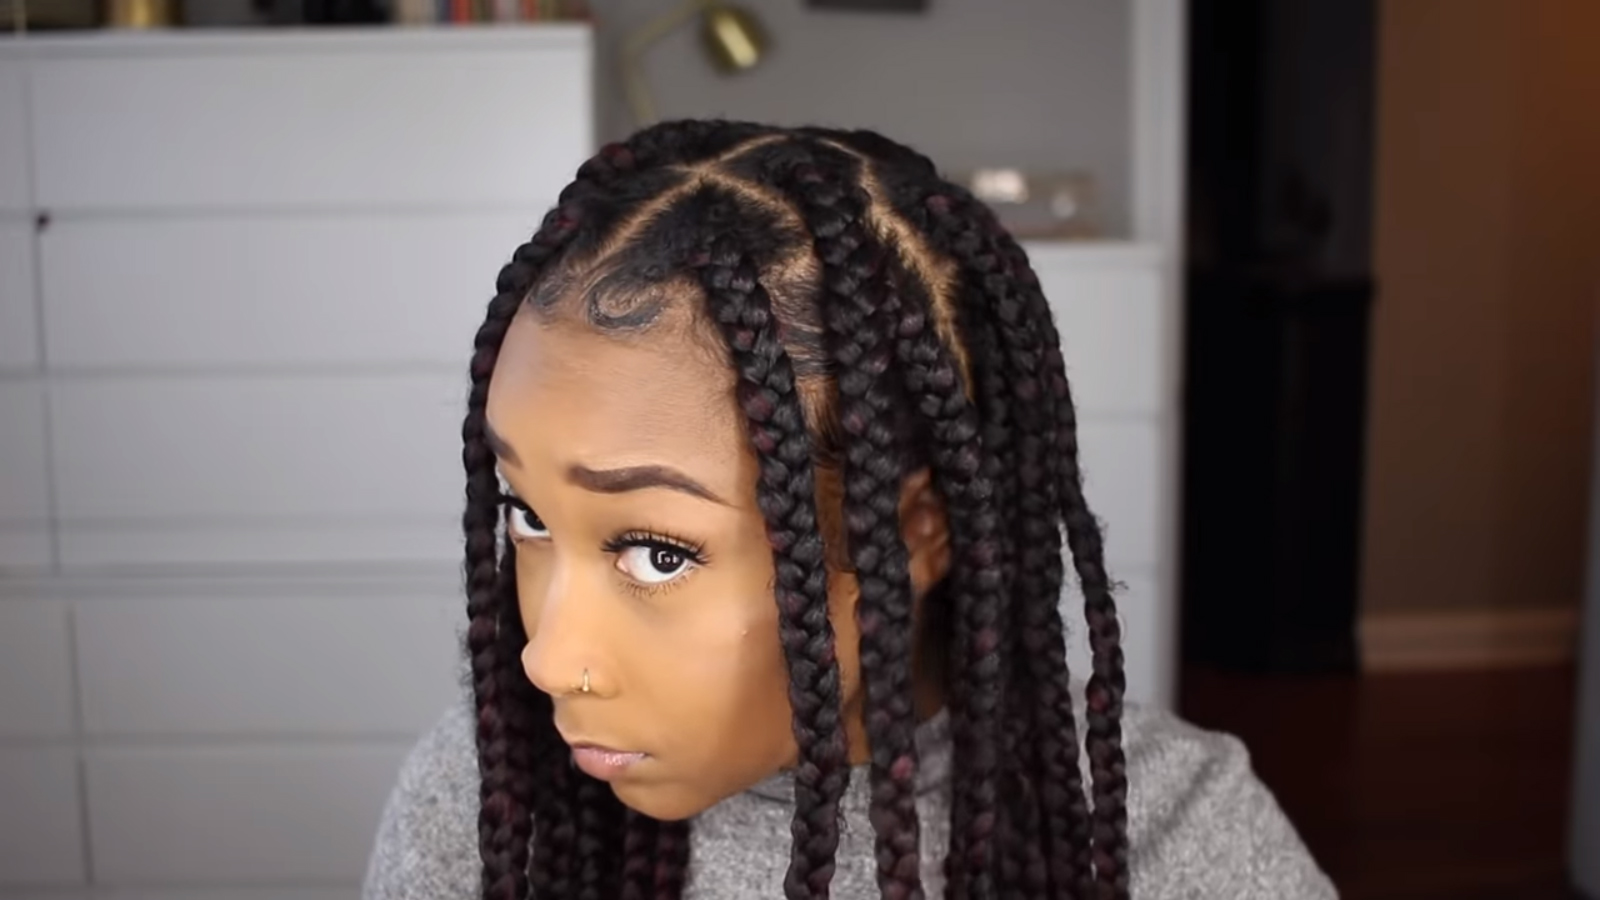 Two Simple Ways To Make Jumbo Knotless Braids For Beginners African American Hairstyle Videos Aahv Simply put, knotless braids don't have the traditional knot you likely grew up with at the start of each braid. two simple ways to make jumbo knotless